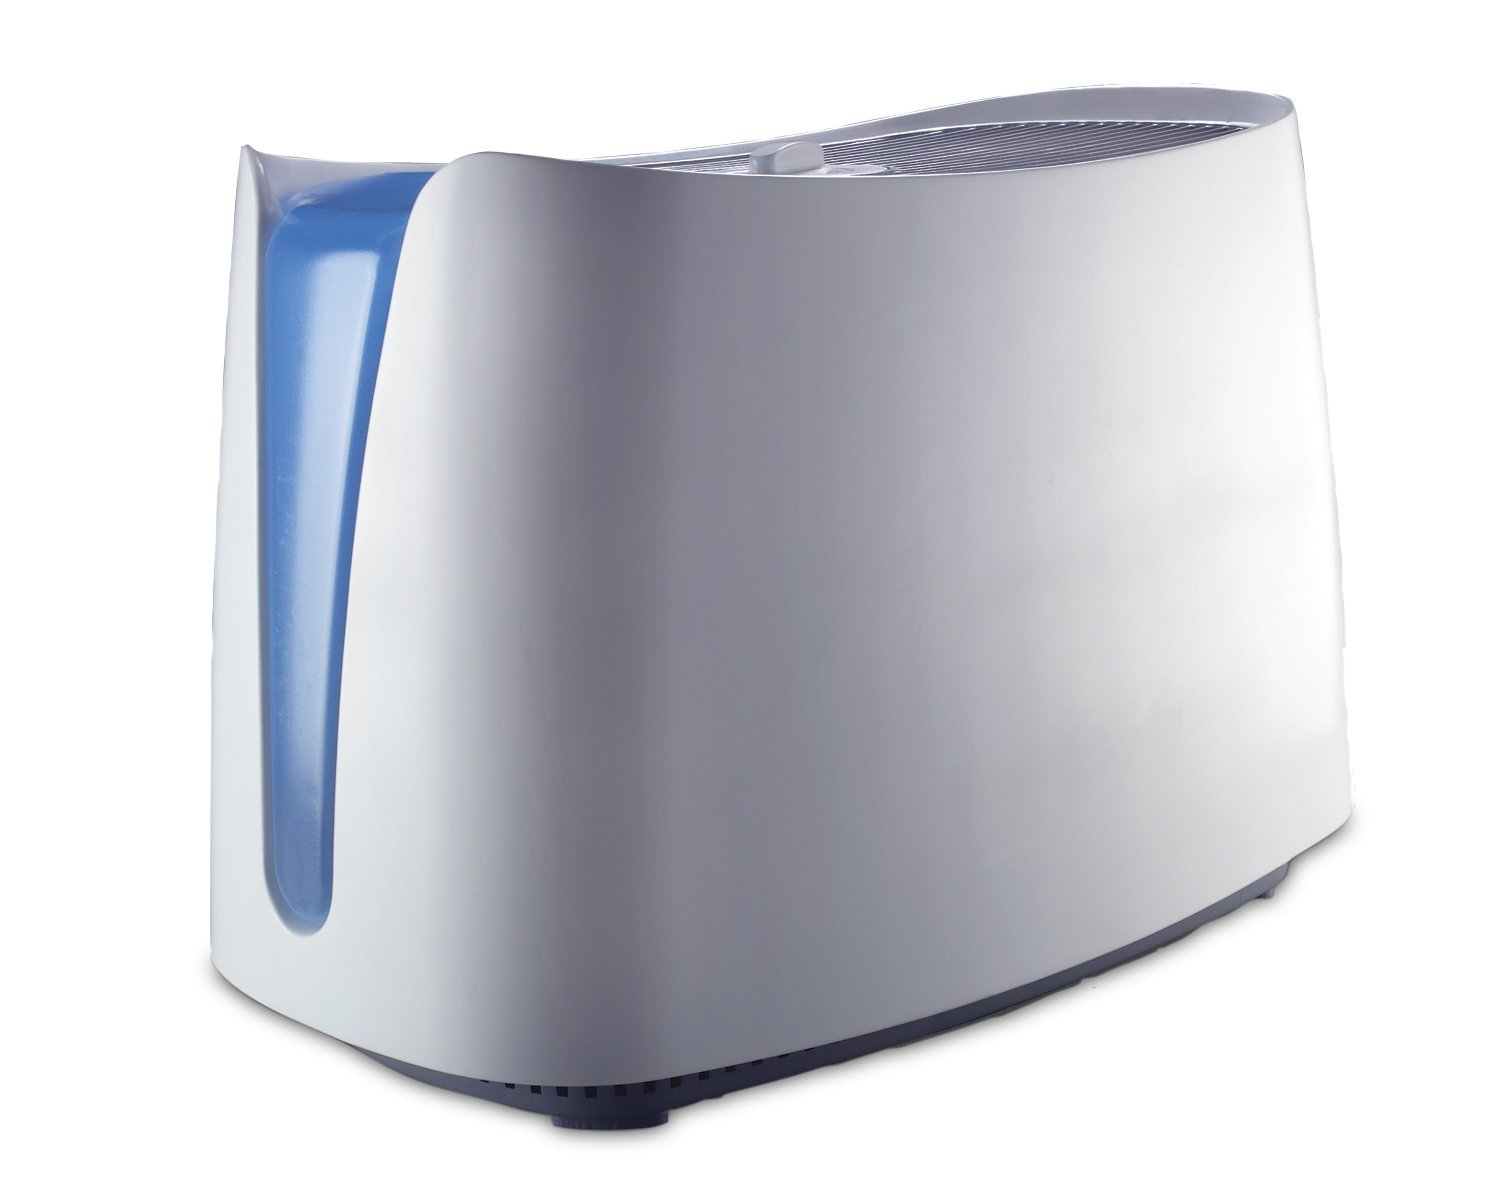 Honeywell HCM350W Germ Free Cool Mist Humidifier White (Renewed)